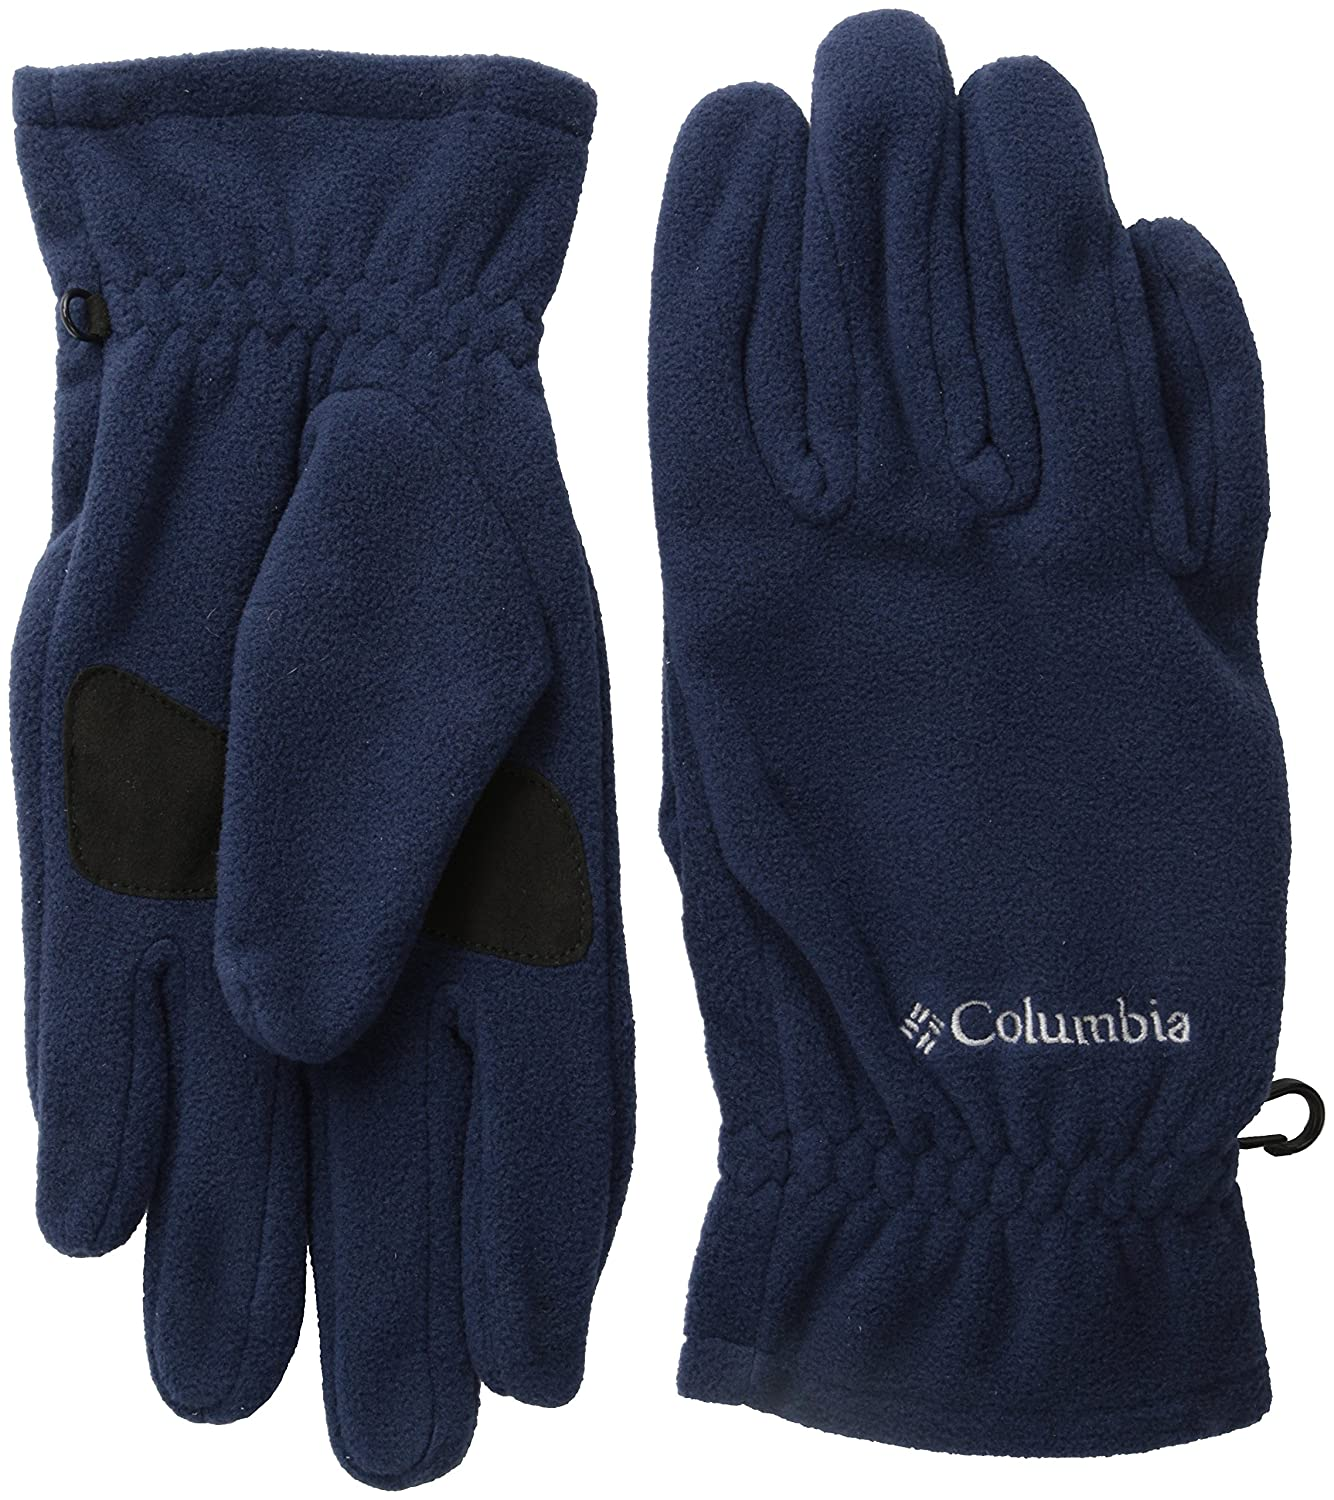 Mens fleece gloves xxl - Columbia Men S M Fast Trek Glove Black Small At Amazon Men S Clothing Store